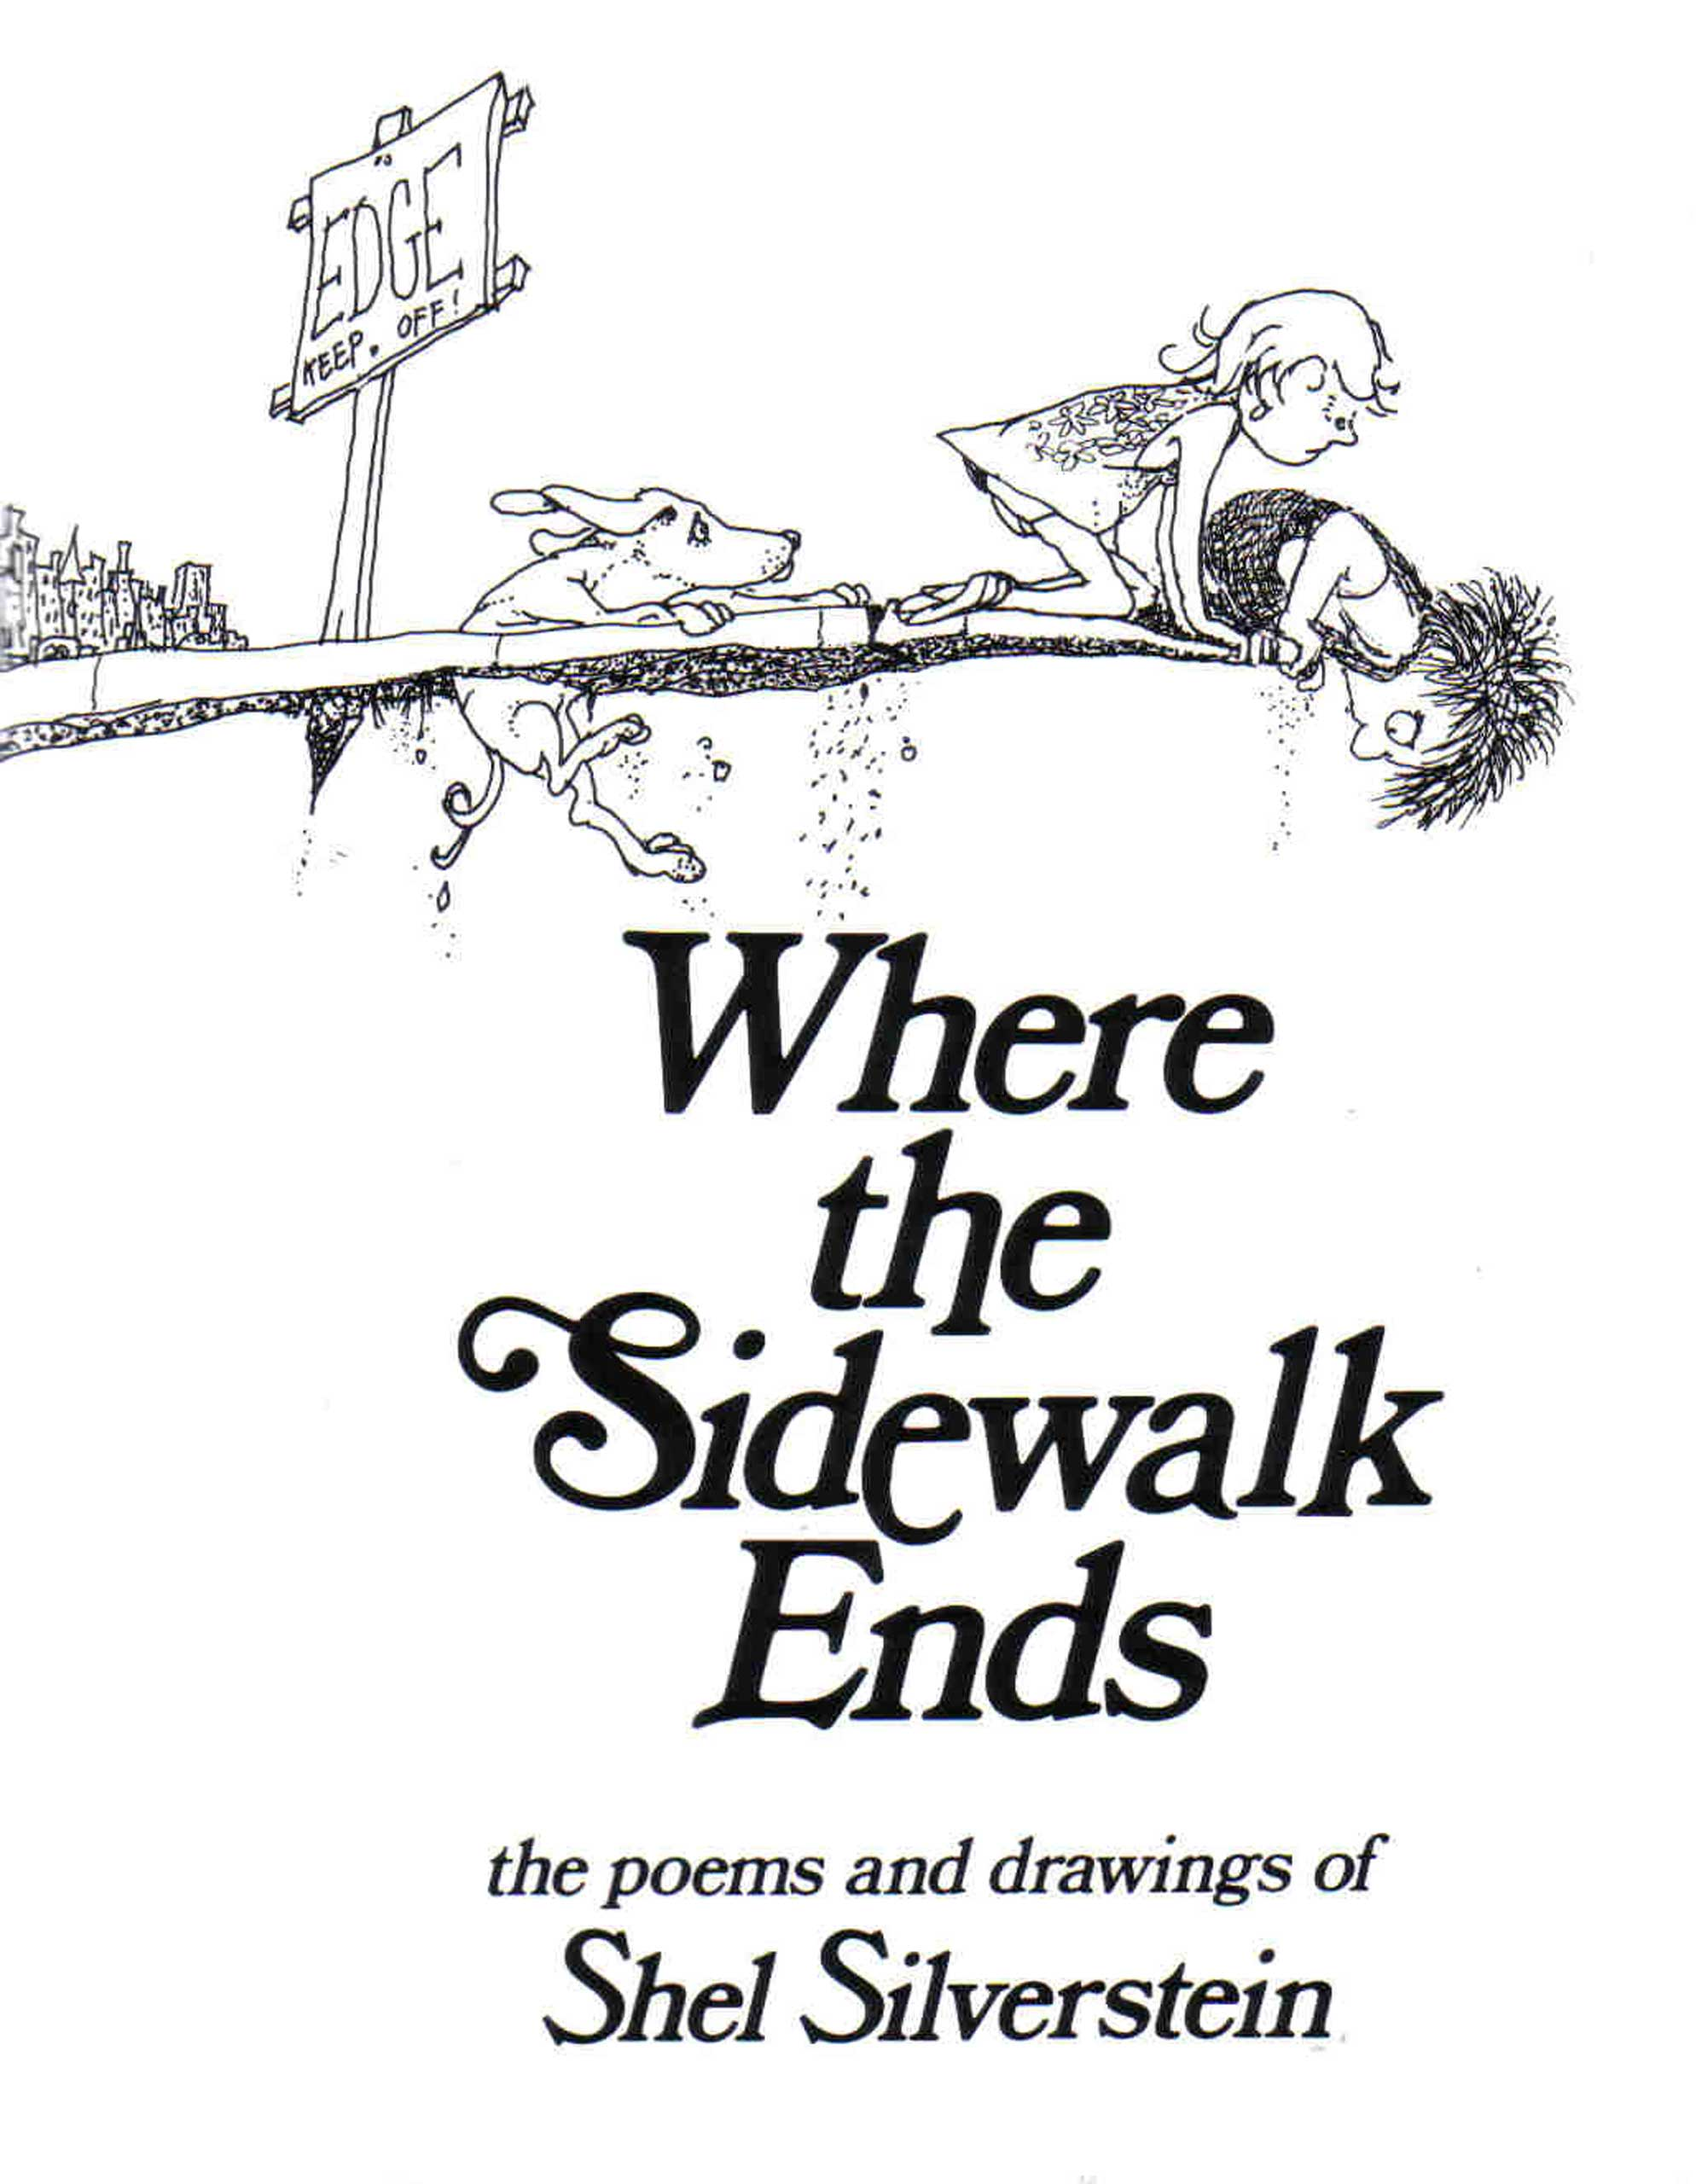 "Where the Sidewalk Ends, by Shel Silverstein.                                                                                                                            Silverstein wasn't just good at tales of leafy self-sacrifice. His loopy poems have been speaking to kids' concerns and sparking their imaginations for decades. Any child who's ever fantasized about playing ""hug o' war"" instead of tug-of-war will find a kindred spirit in these pages.                                                                                                                            Buy now: Where the Sidewalk Ends"